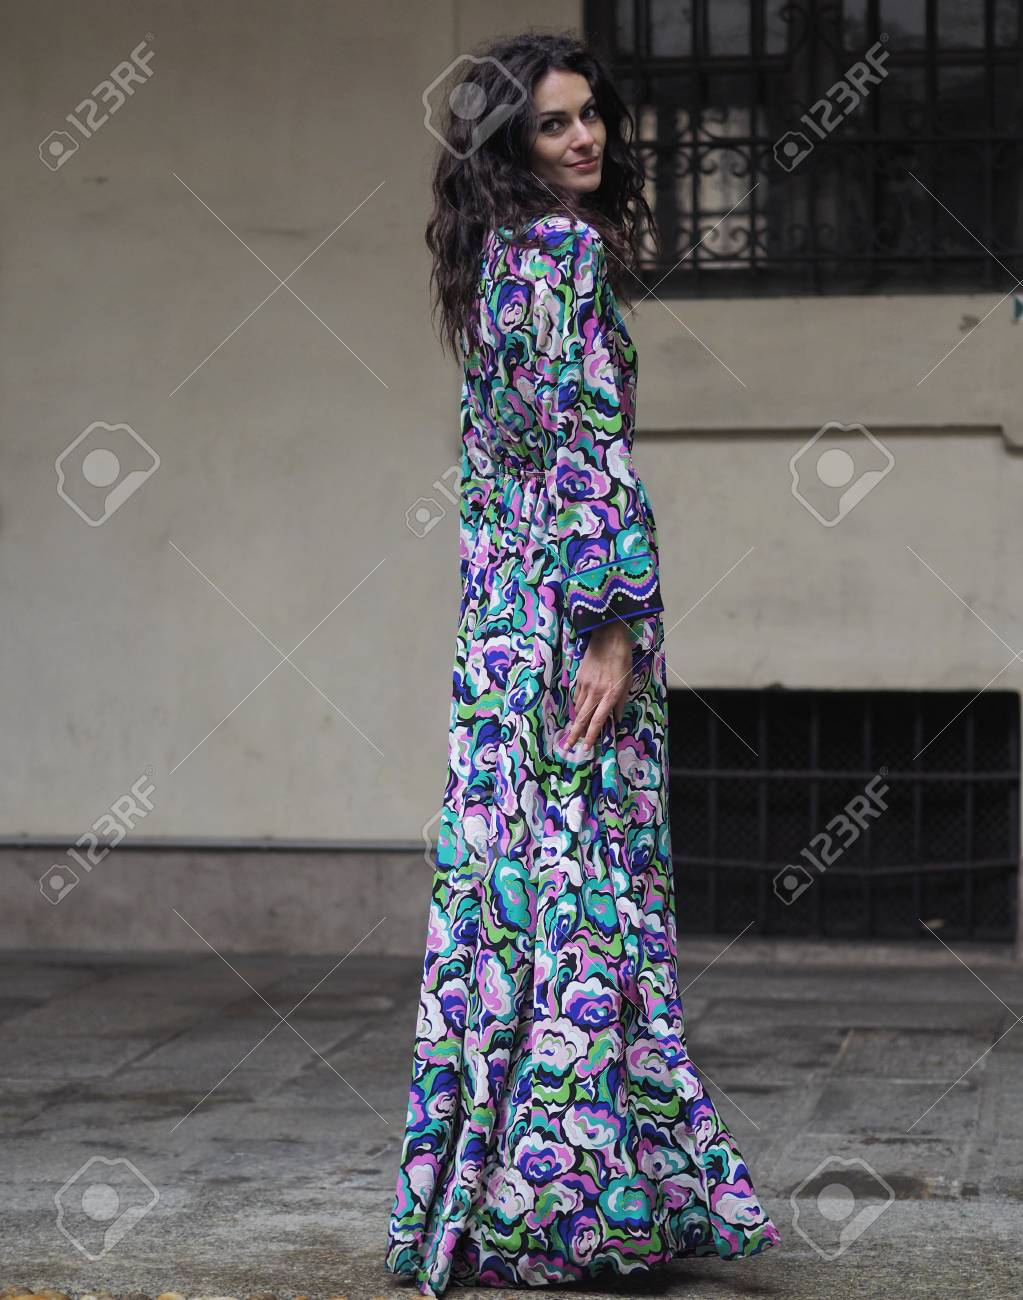 Milan February 22 2018 Actress Paola Turani Posing For Photographers Stock Photo Picture And Royalty Free Image Image 103139644